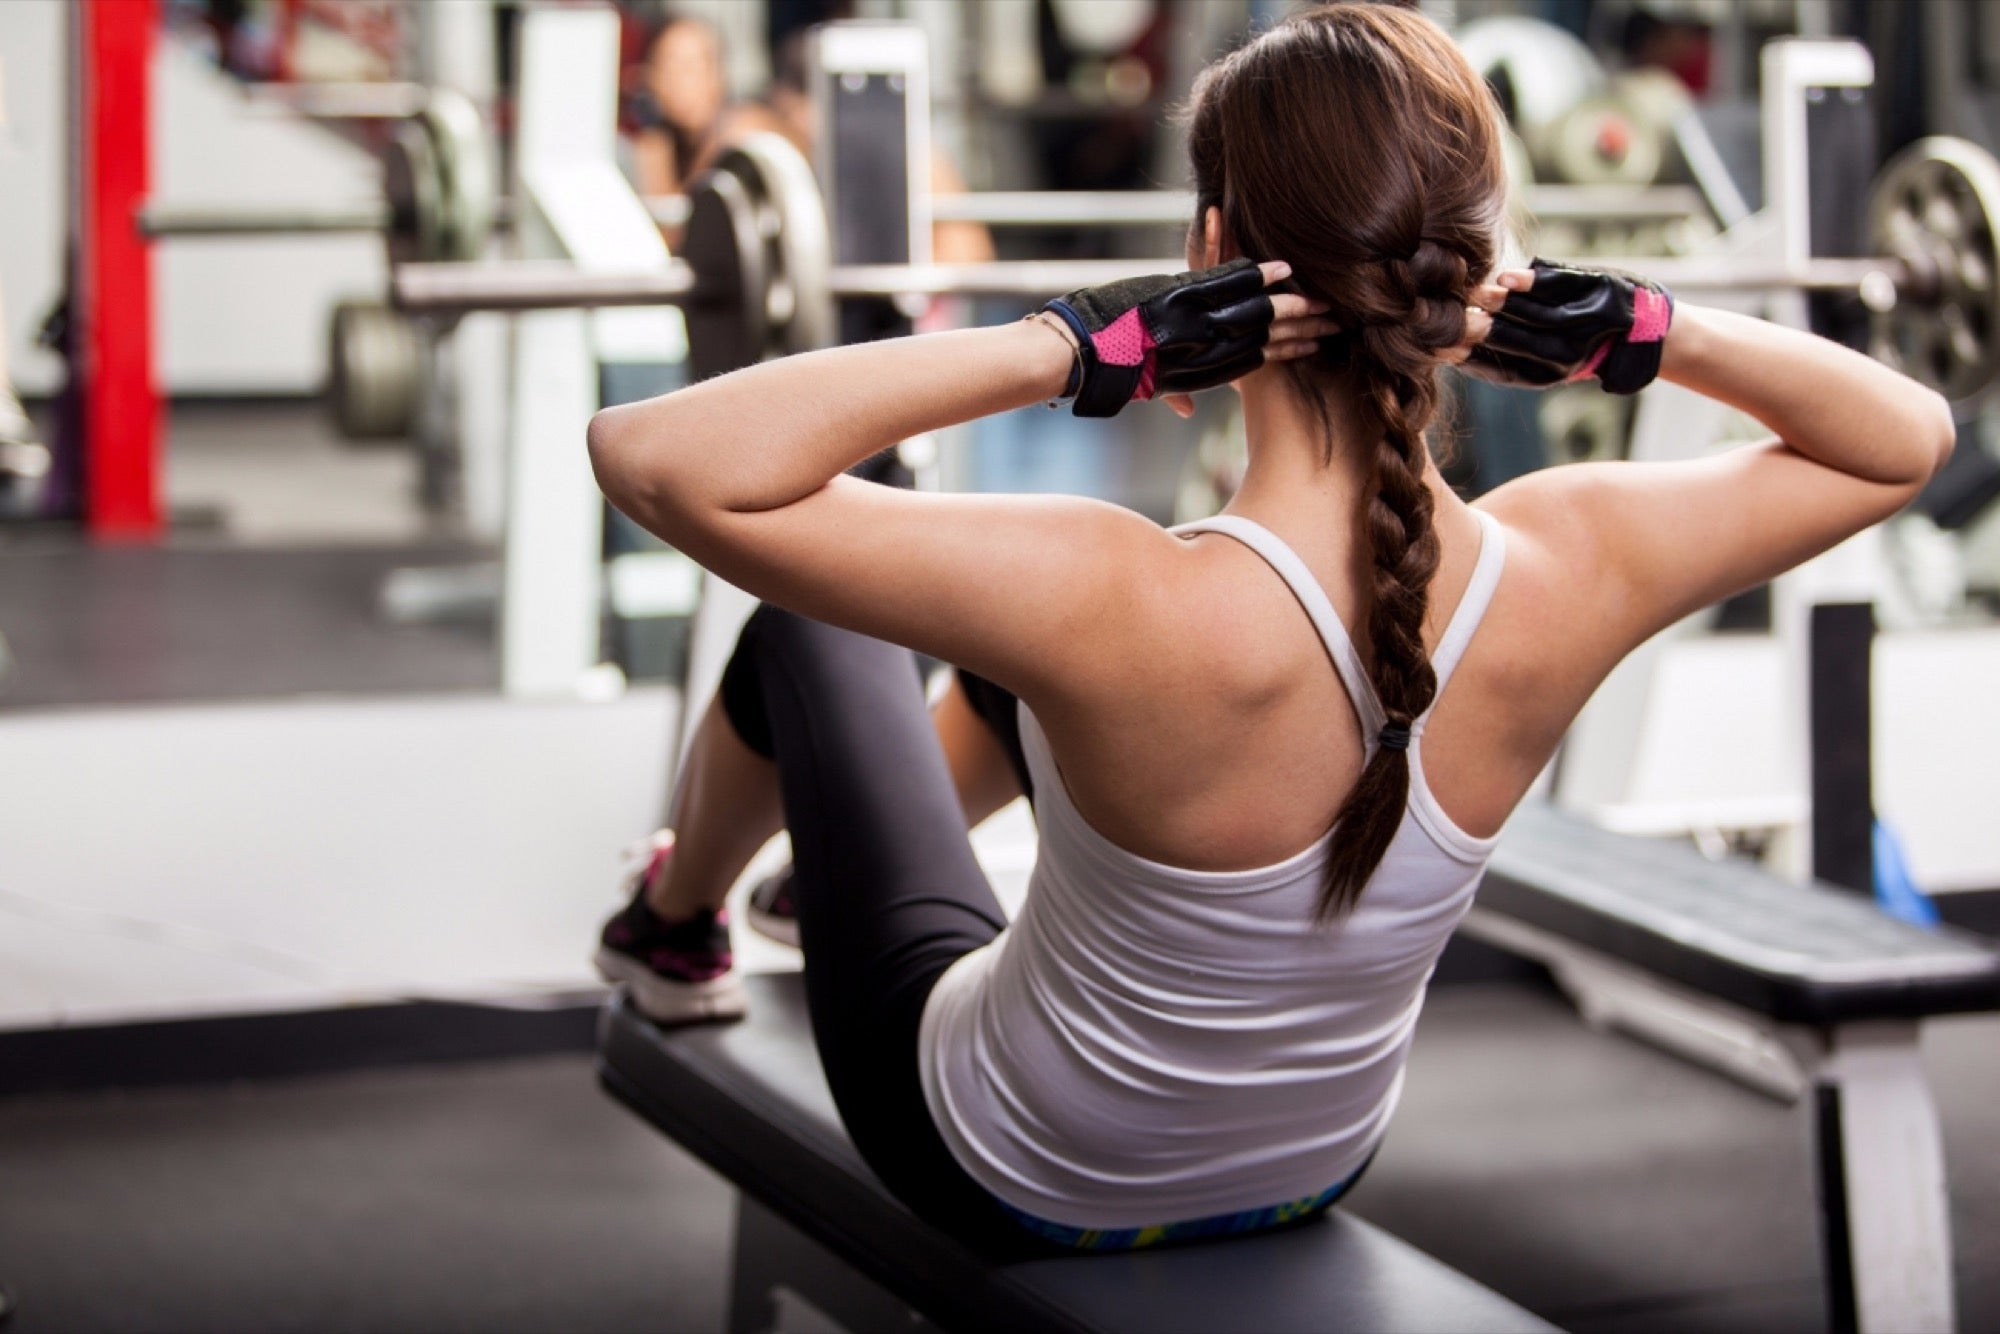 5 Companies Where You Can Exercise While Working